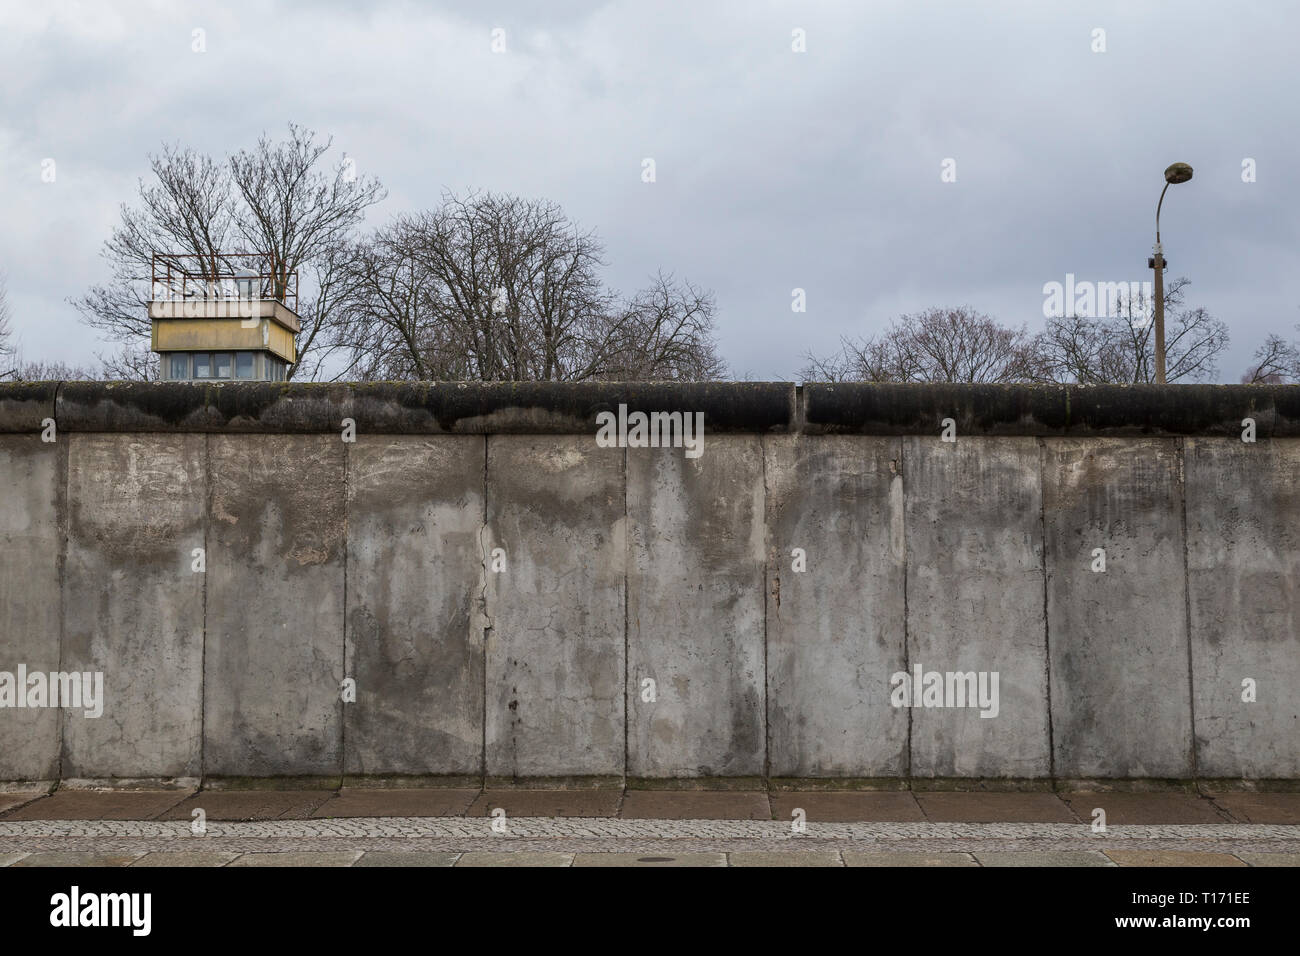 Front view of a section of the original Berlin Wall and watchtower at the Berlin Wall Memorial (Berliner Mauer) in Berlin, Germany, on a cloudy day. - Stock Image